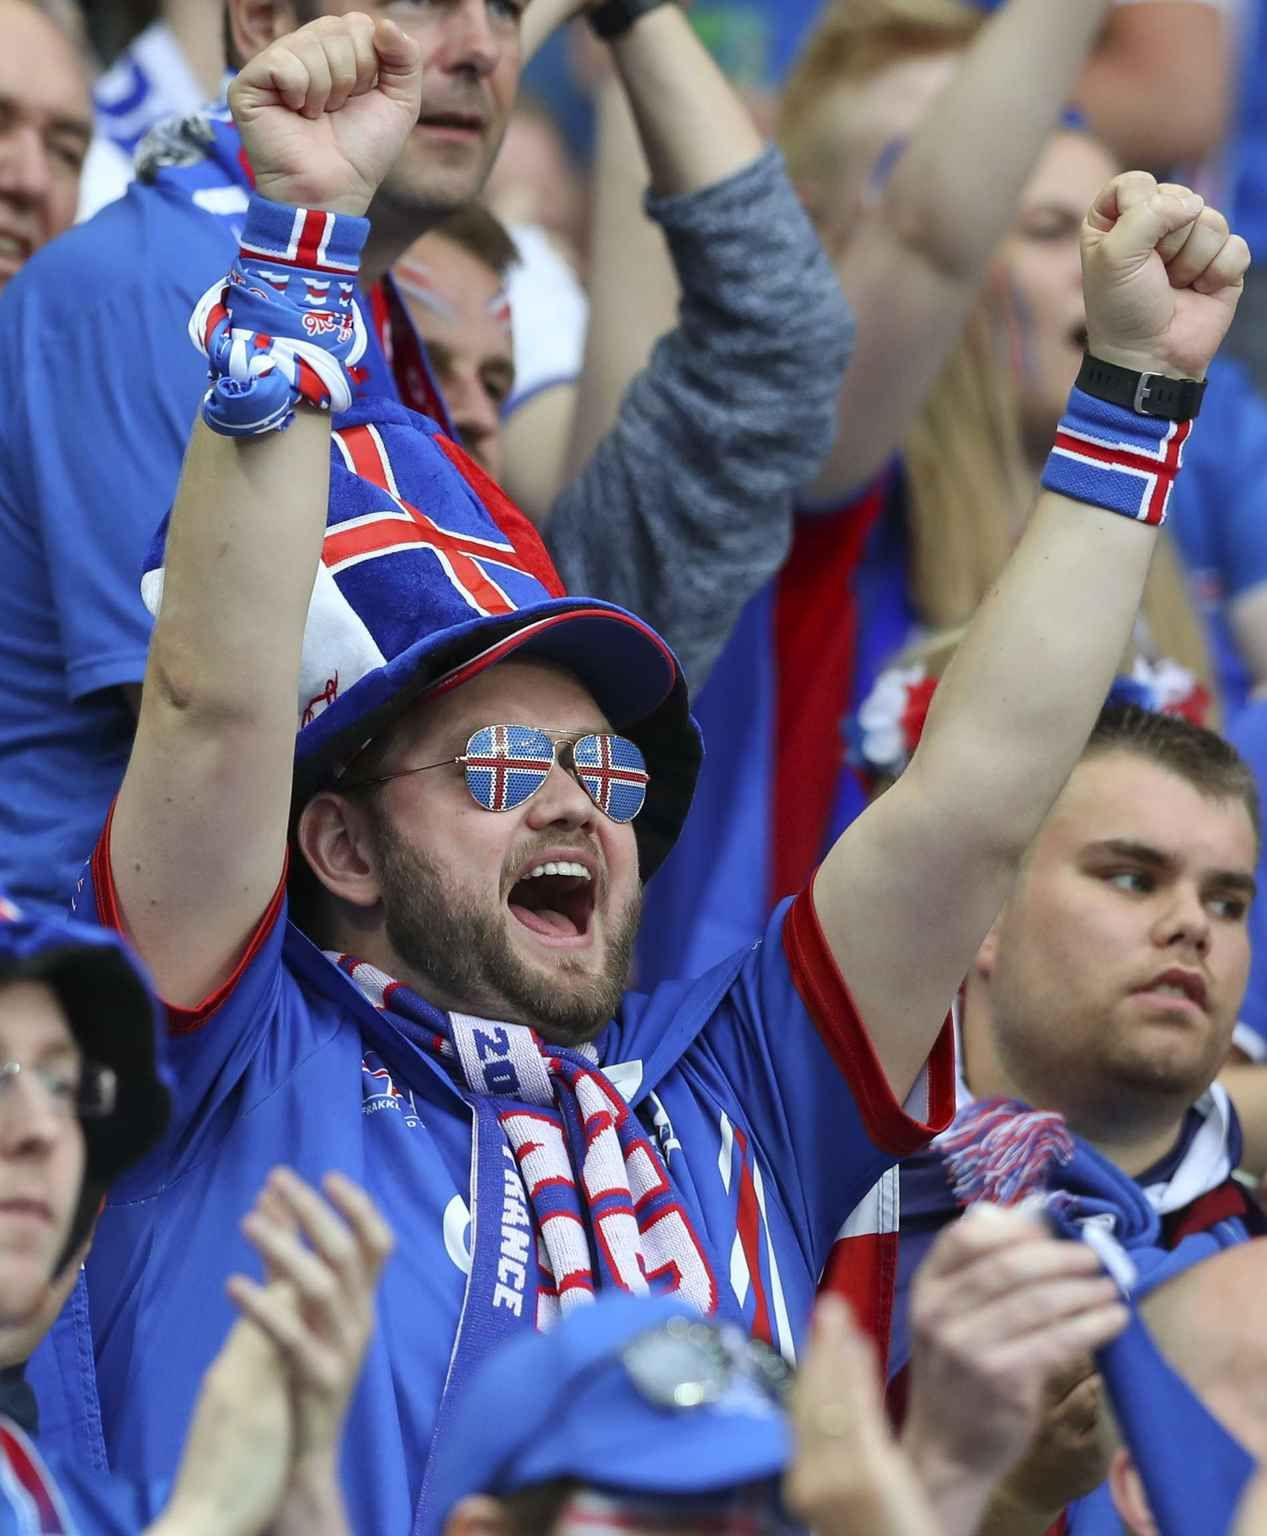 Iceland's fans cheer prior to the Euro 2016 quarterfinal soccer match between France and Iceland, at the Stade de France in Saint-Denis, north of Paris, France, Sunday, July 3, 2016. (AP Photo/Thibault Camus)/FP110/98178340903/1607032047